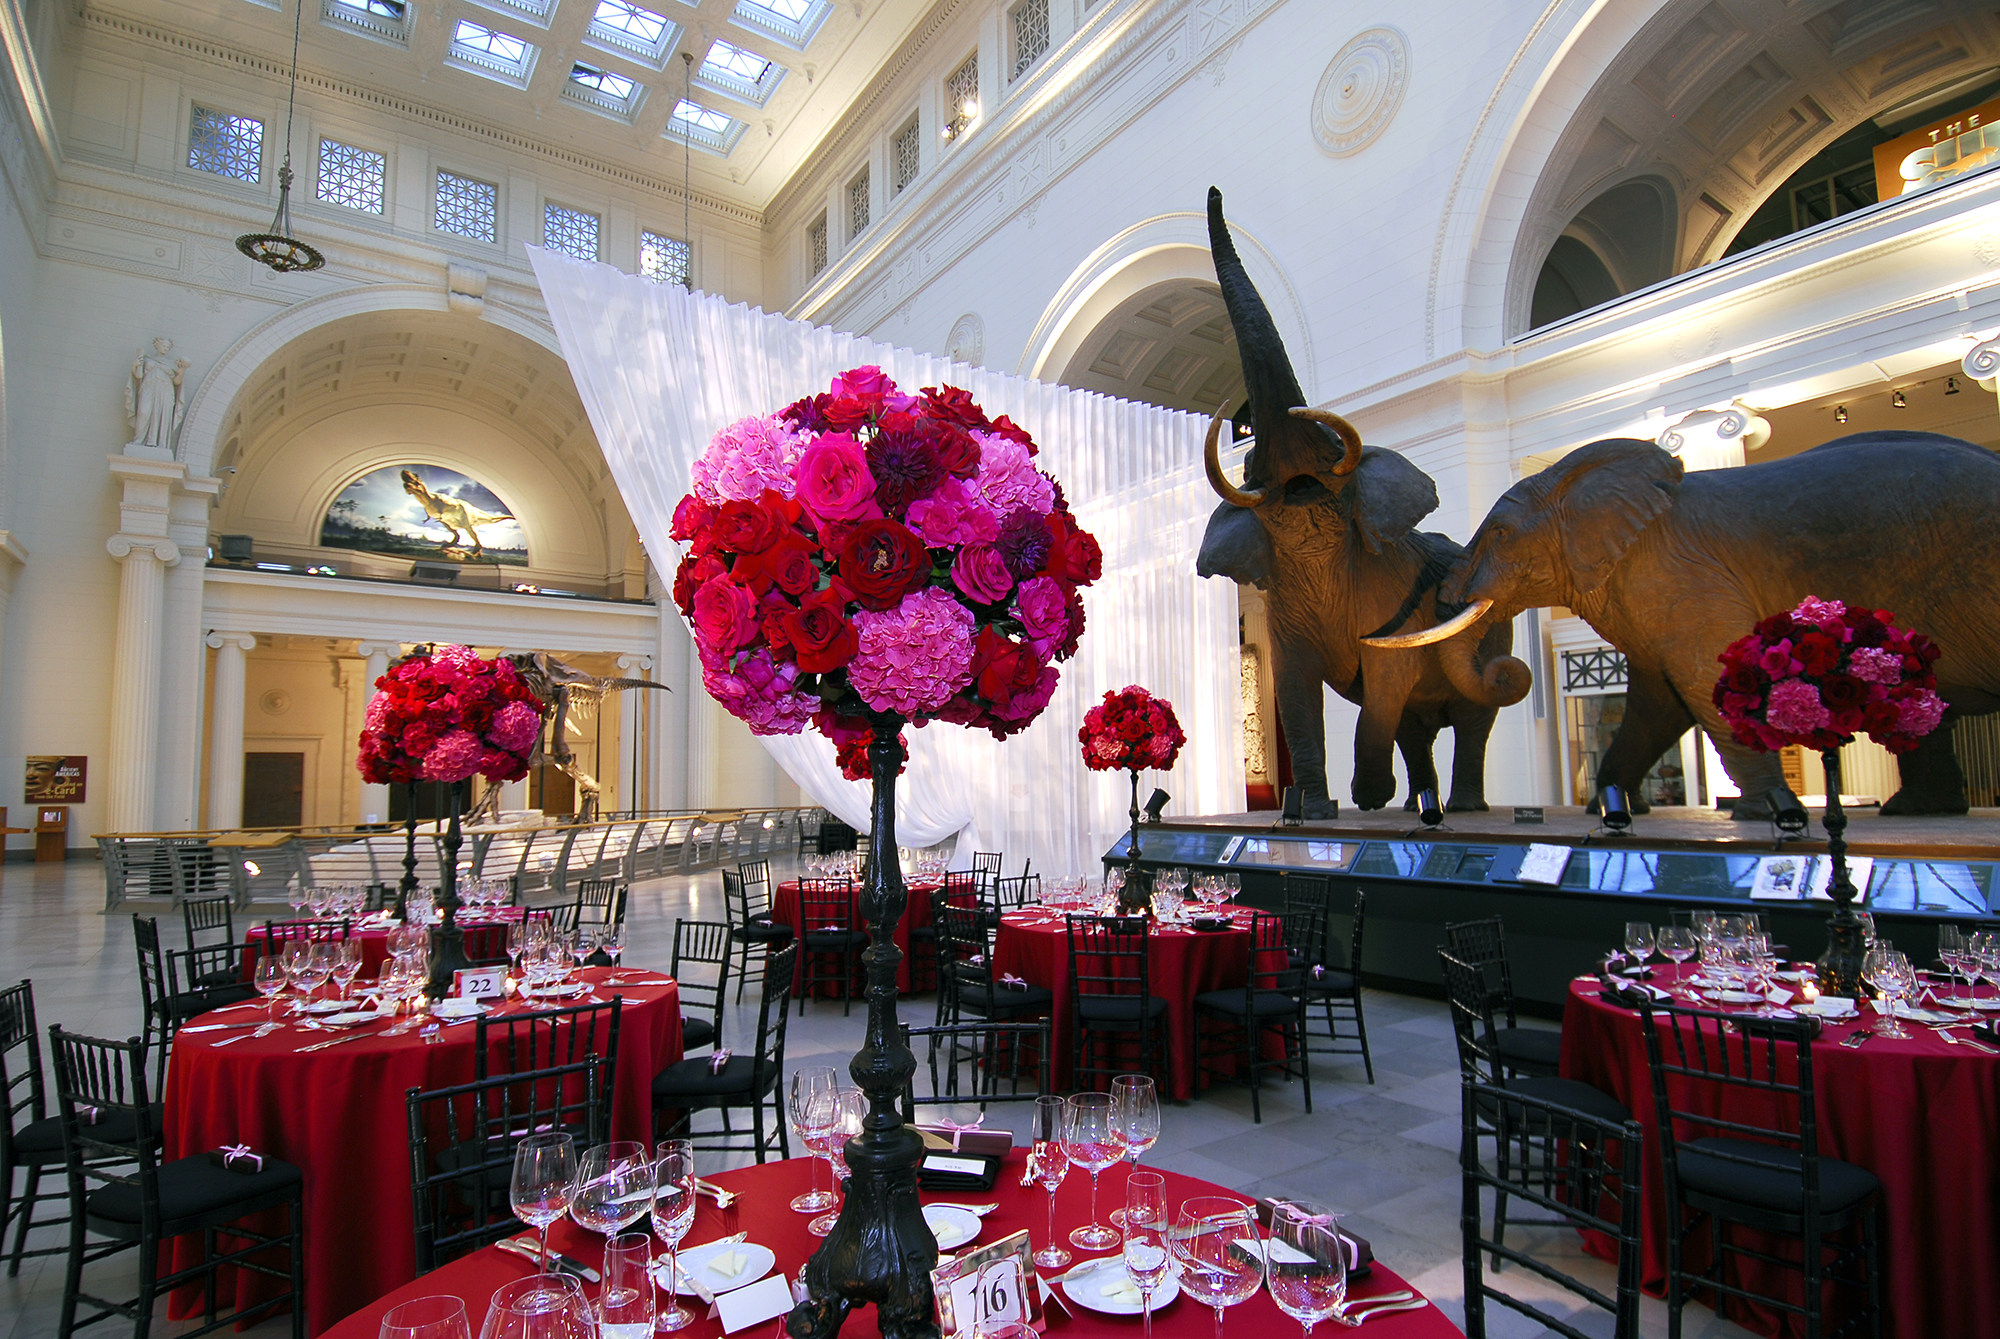 Circular tables covered with red table cloths and pink and red floral arrangements are set up in Stanley Field Hall. The taxidermied African elephants are visible beyond the tables.